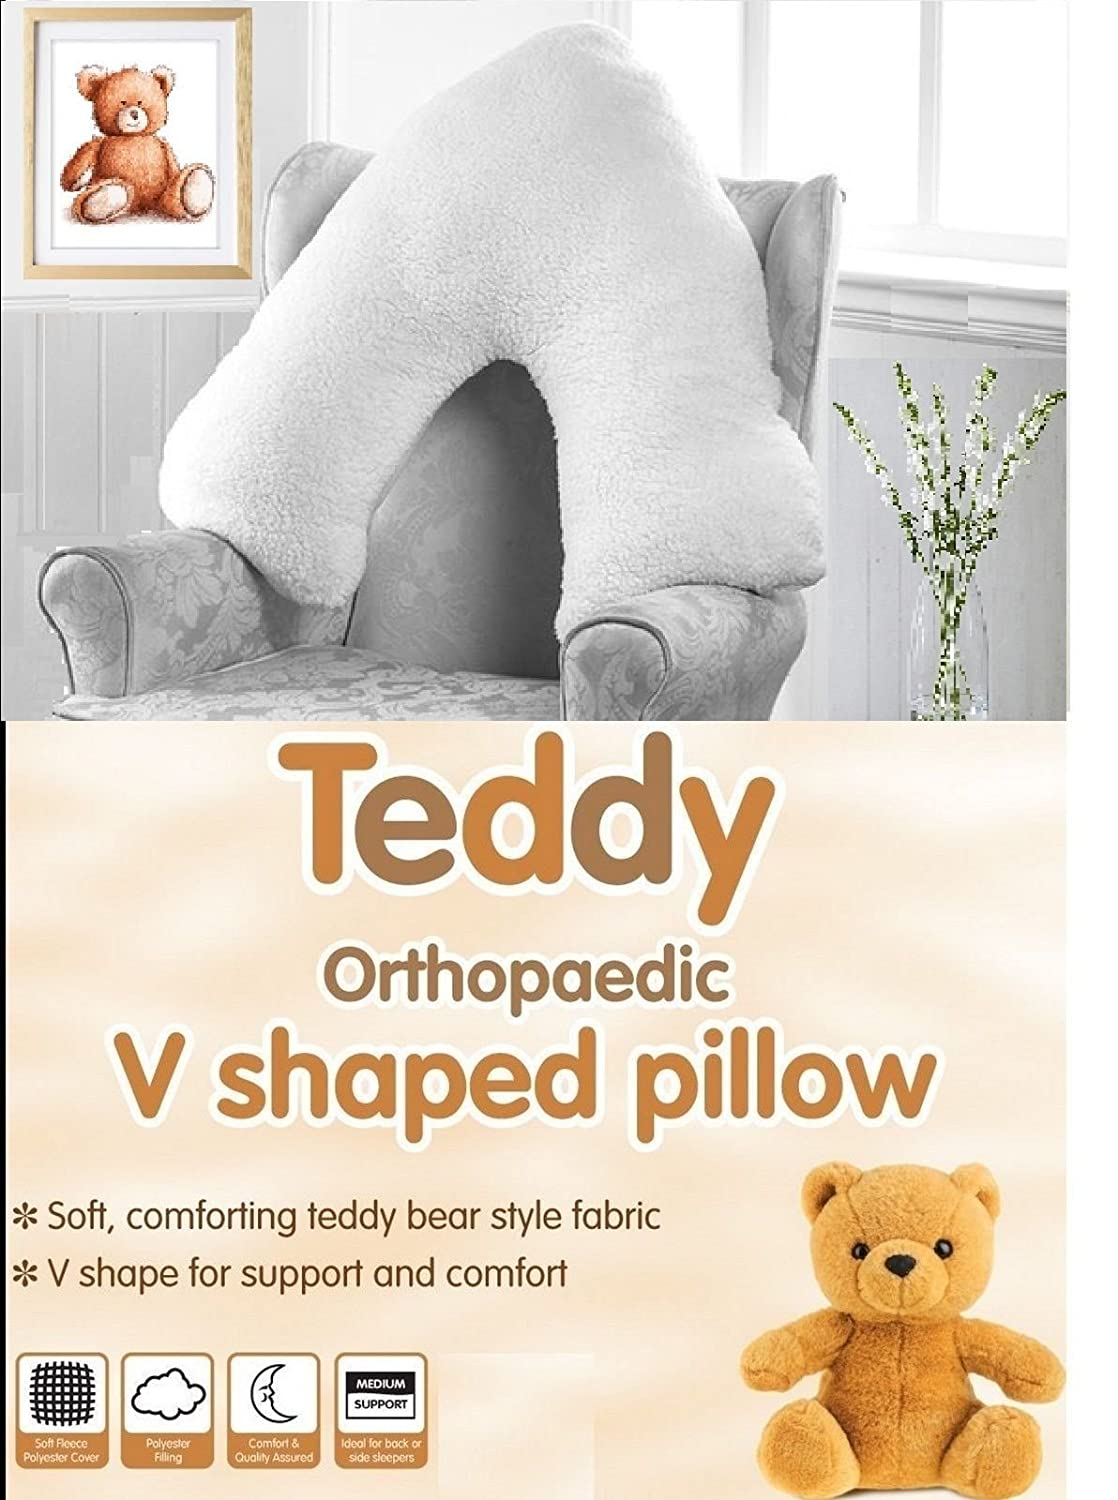 Super soft Teddy Bear Sherpa Fleece Standard & V Shape Orthopedic Nursing Pillow (1 x Standard Teddy Bear Sherpa Pillow) Sleep Easy